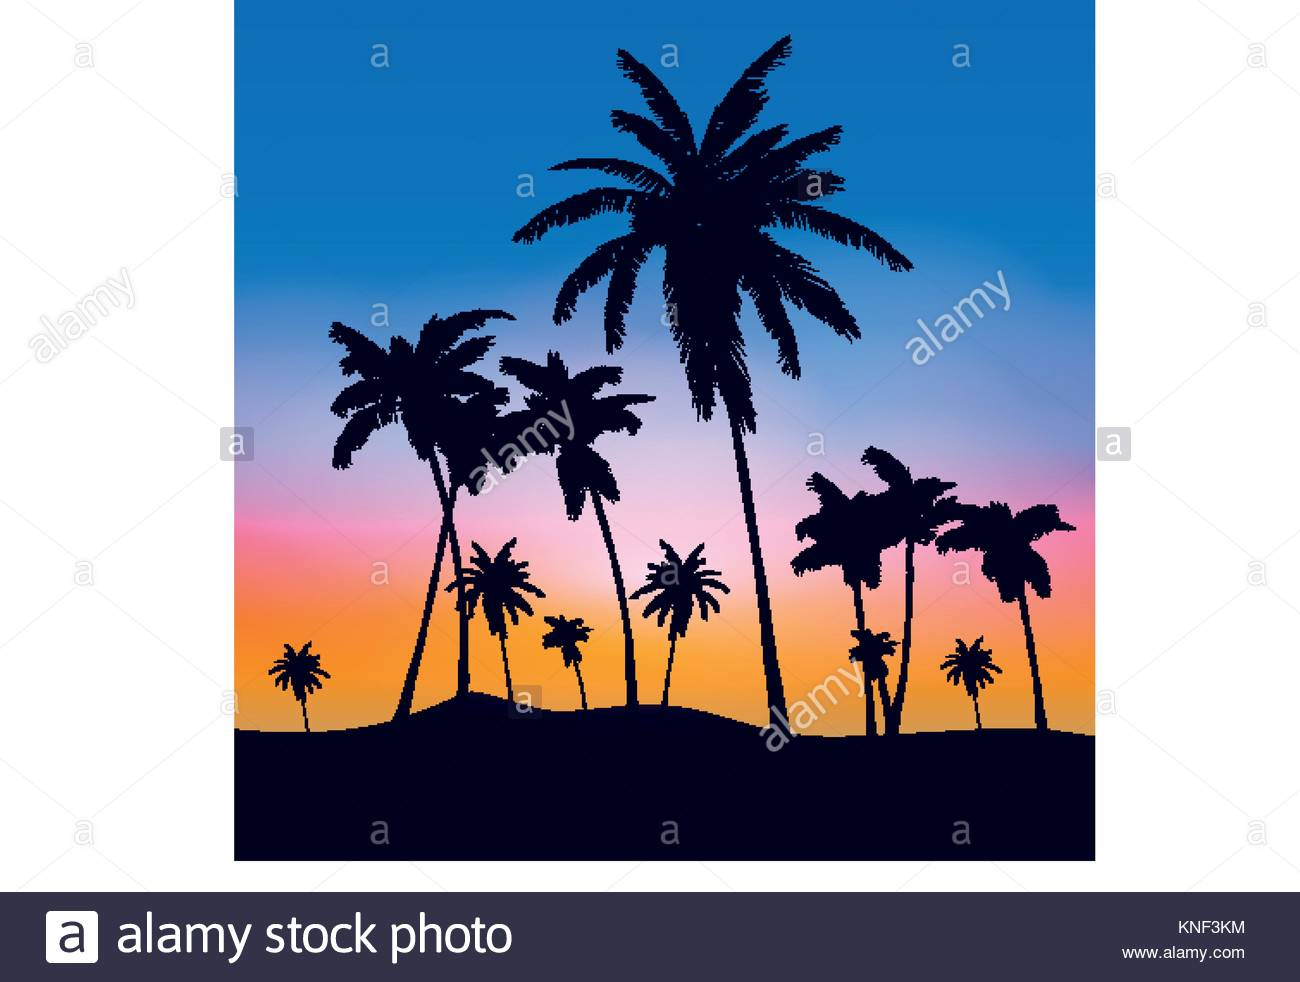 1300x982 Summer Palm Trees Tumblr Stock Vector Art Amp Illustration, Vector